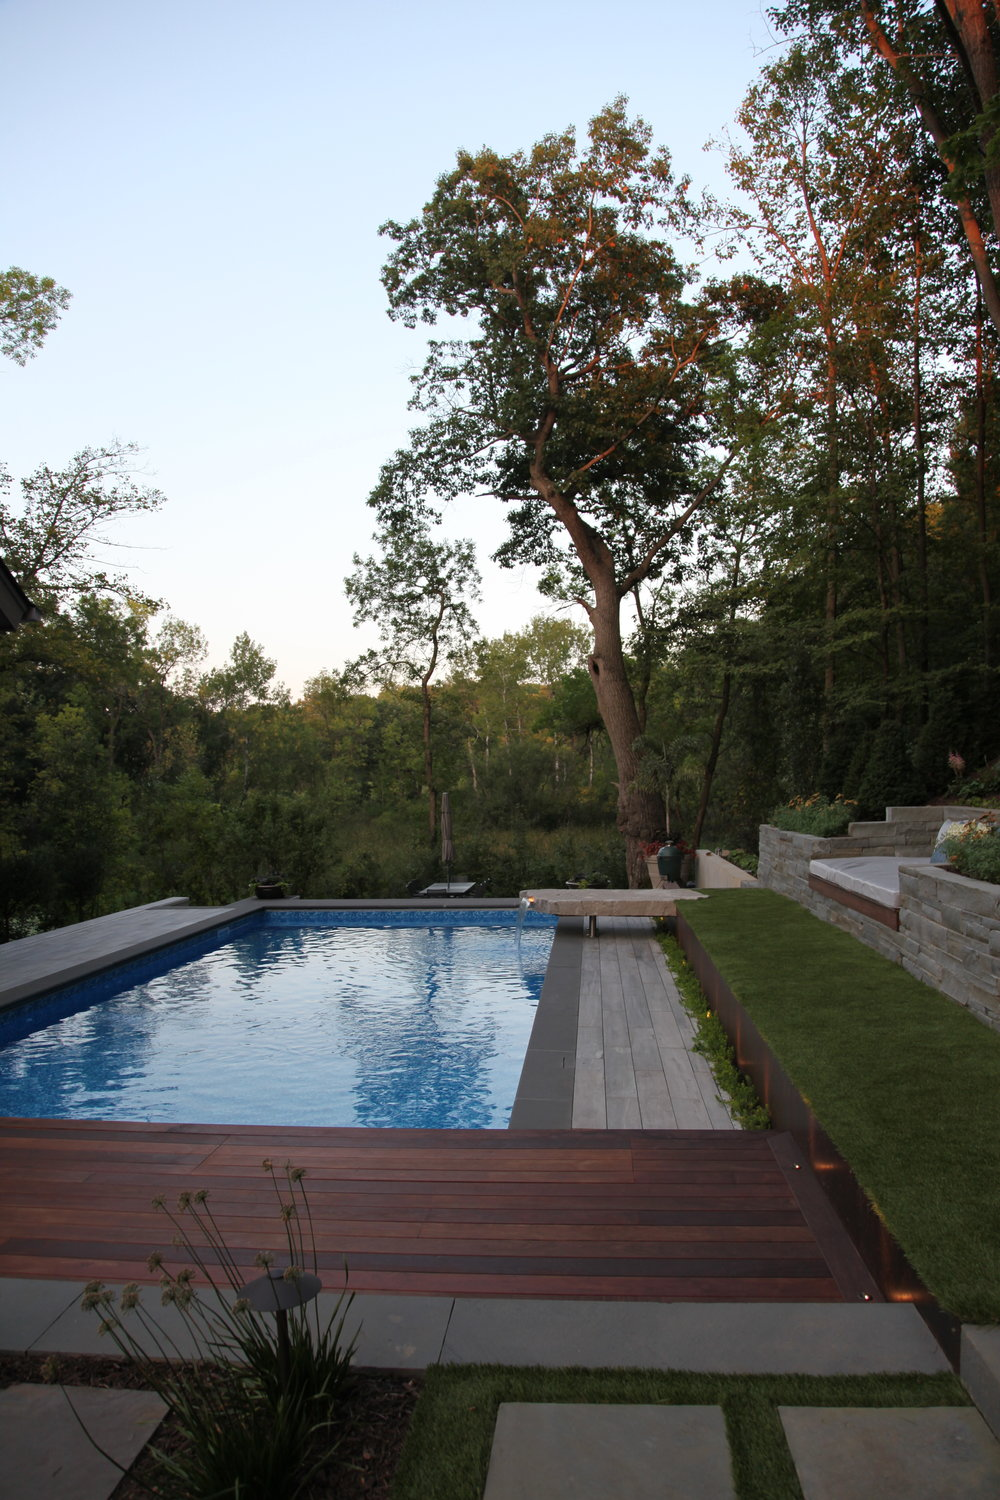 Moms Design Build - Hardwood Deck Corten Retaining Wall